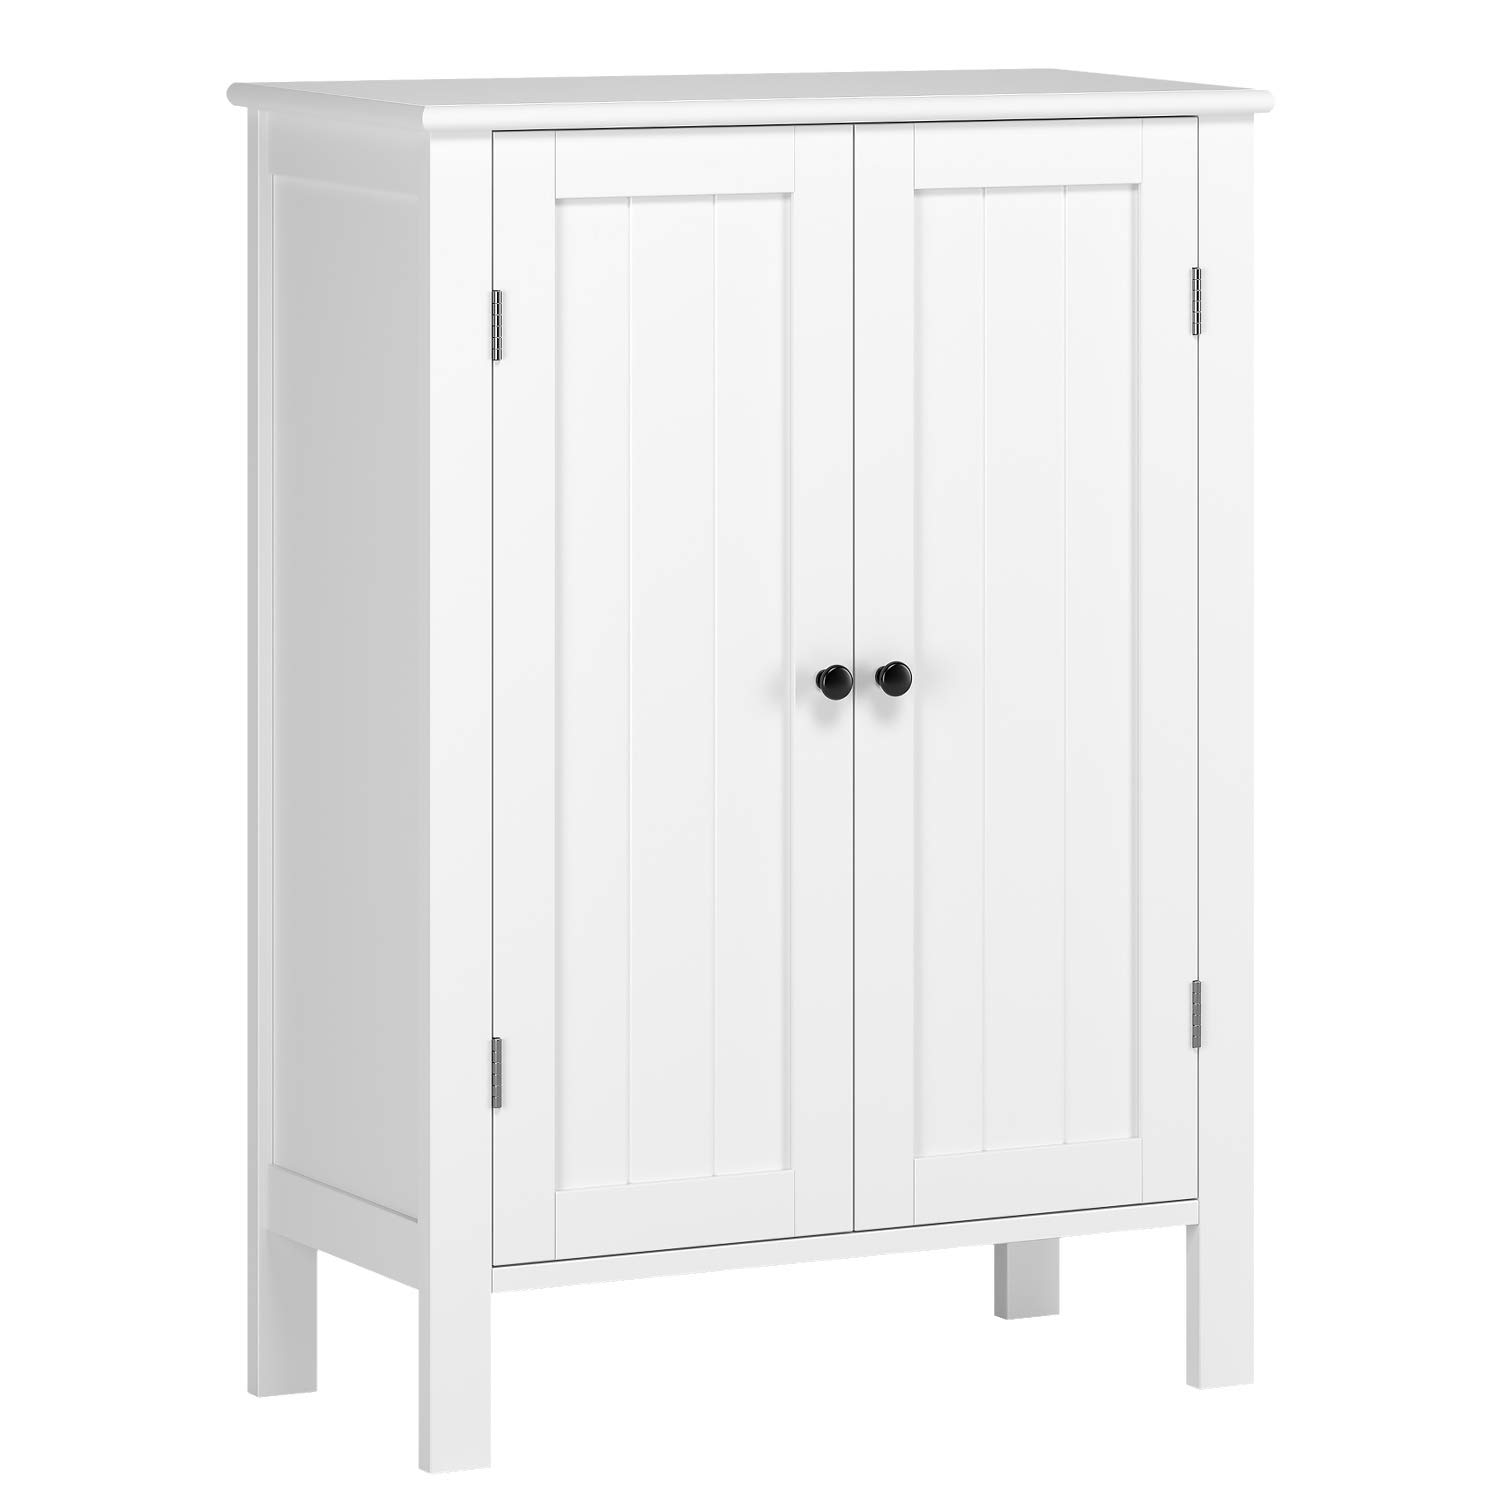 HOMFA Bathroom Floor Cabinet, Free Standing Side Cabinet Storage Organizer with Double Doors and Adjustable Shelf for Home Office, White by Homfa